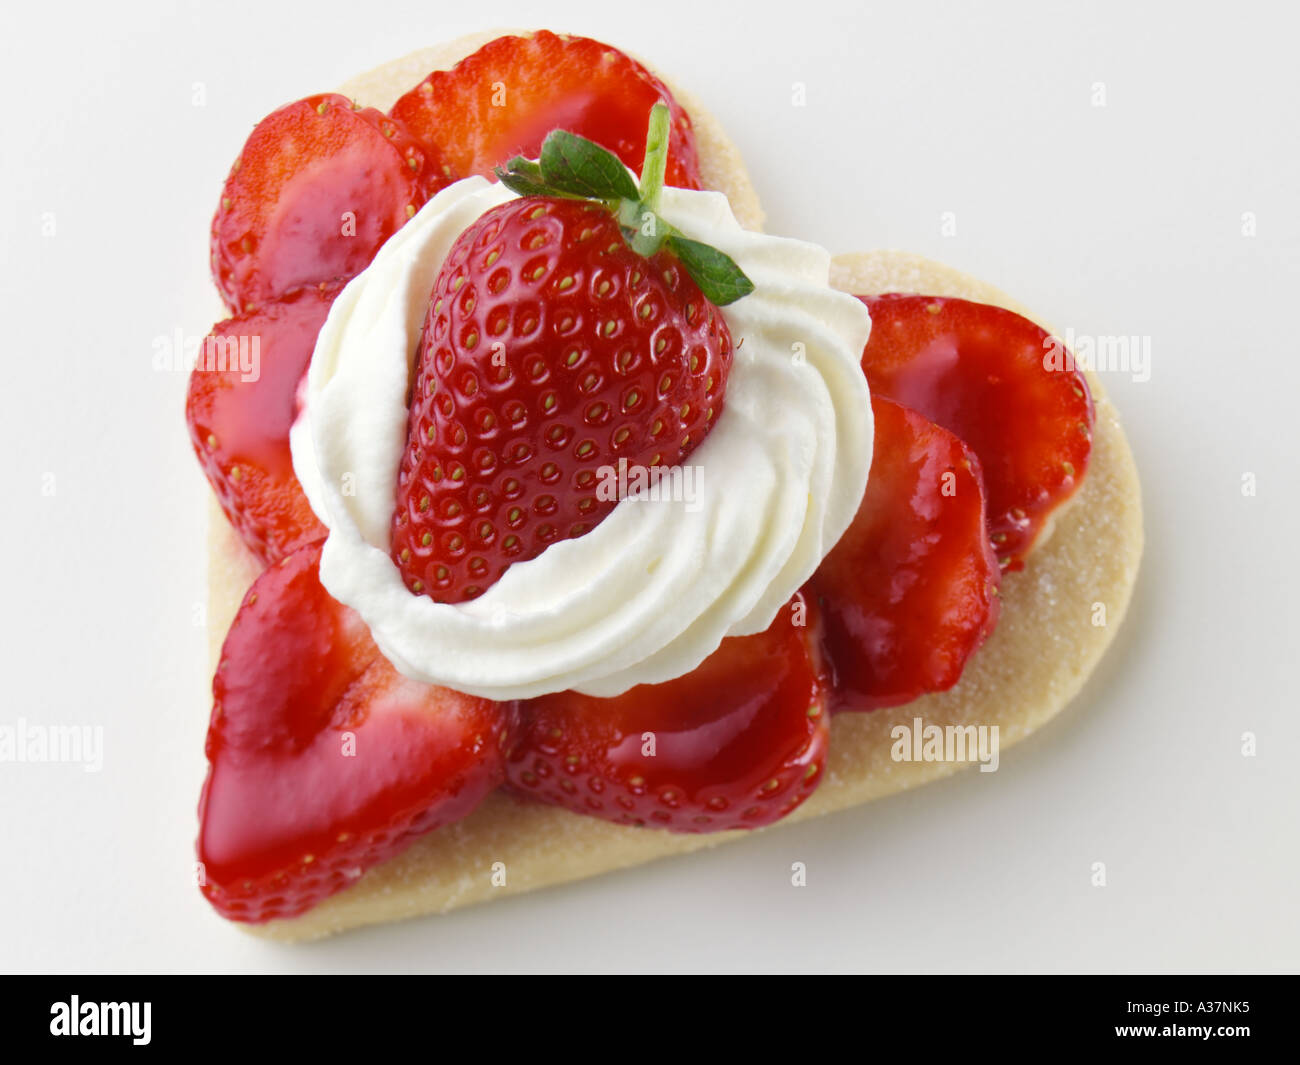 Valentine strawberry shortcake heart shaped - Stock Image